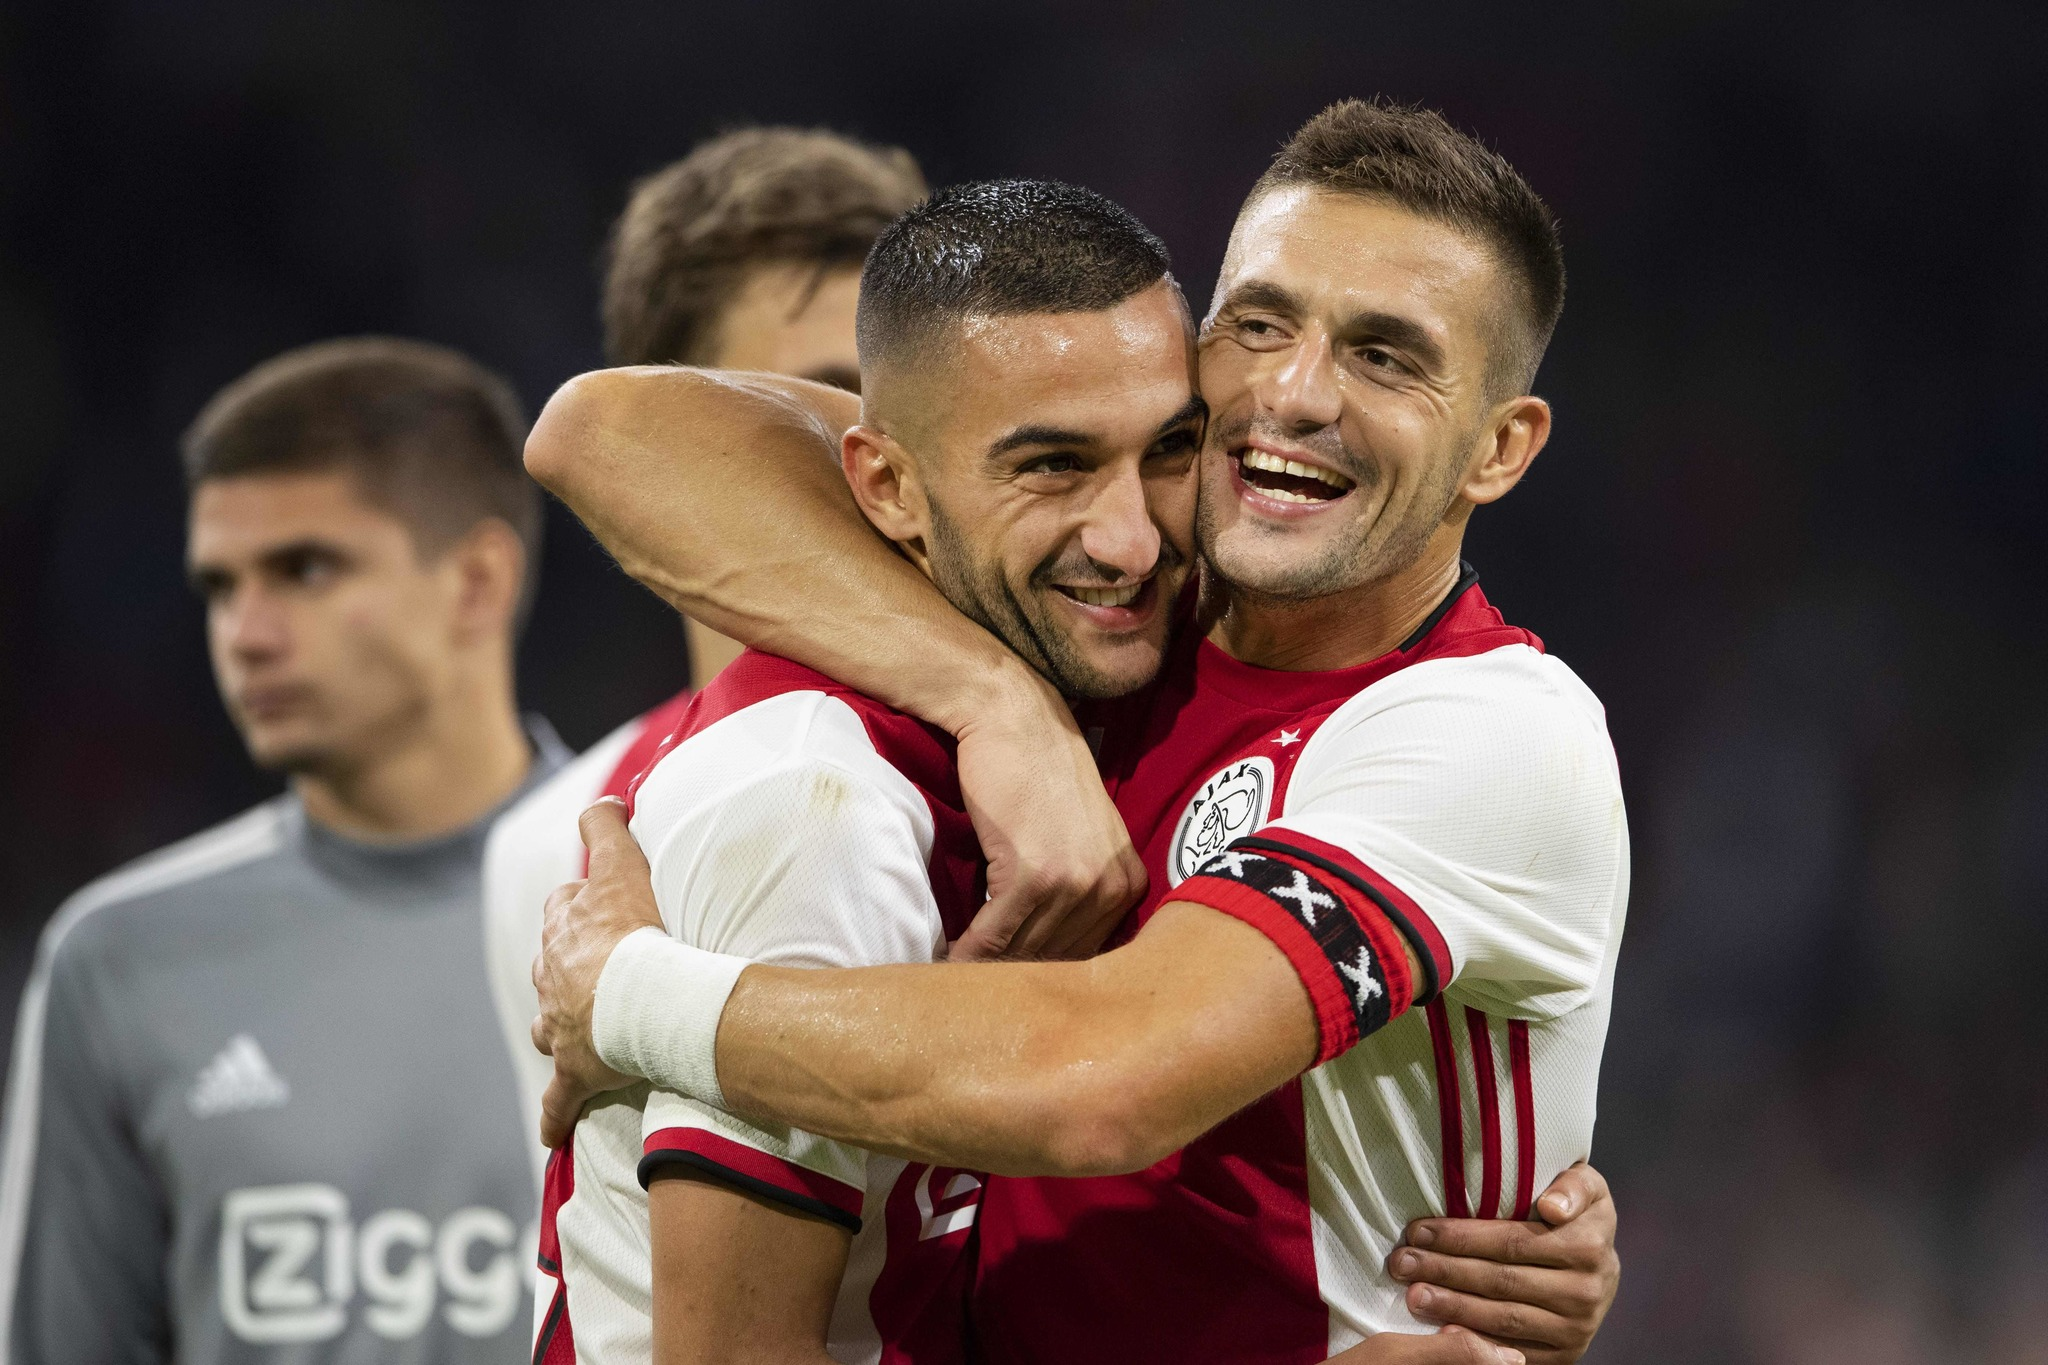 Ajax Amsterdams Serbian forward Dusan <HIT>Tadic</HIT> (R) and Ajax Amsterdams Moroccan midfielder Hakim Ziyech celebrate after winning the UEFA Champions League third preliminary round football match between Ajax Amsterdam and PAOK Saloniki, on August 13, 2019 in Amsterdam, The Netherlands. (Photo by Olaf KRAAK / ANP / AFP) / Netherlands OUT